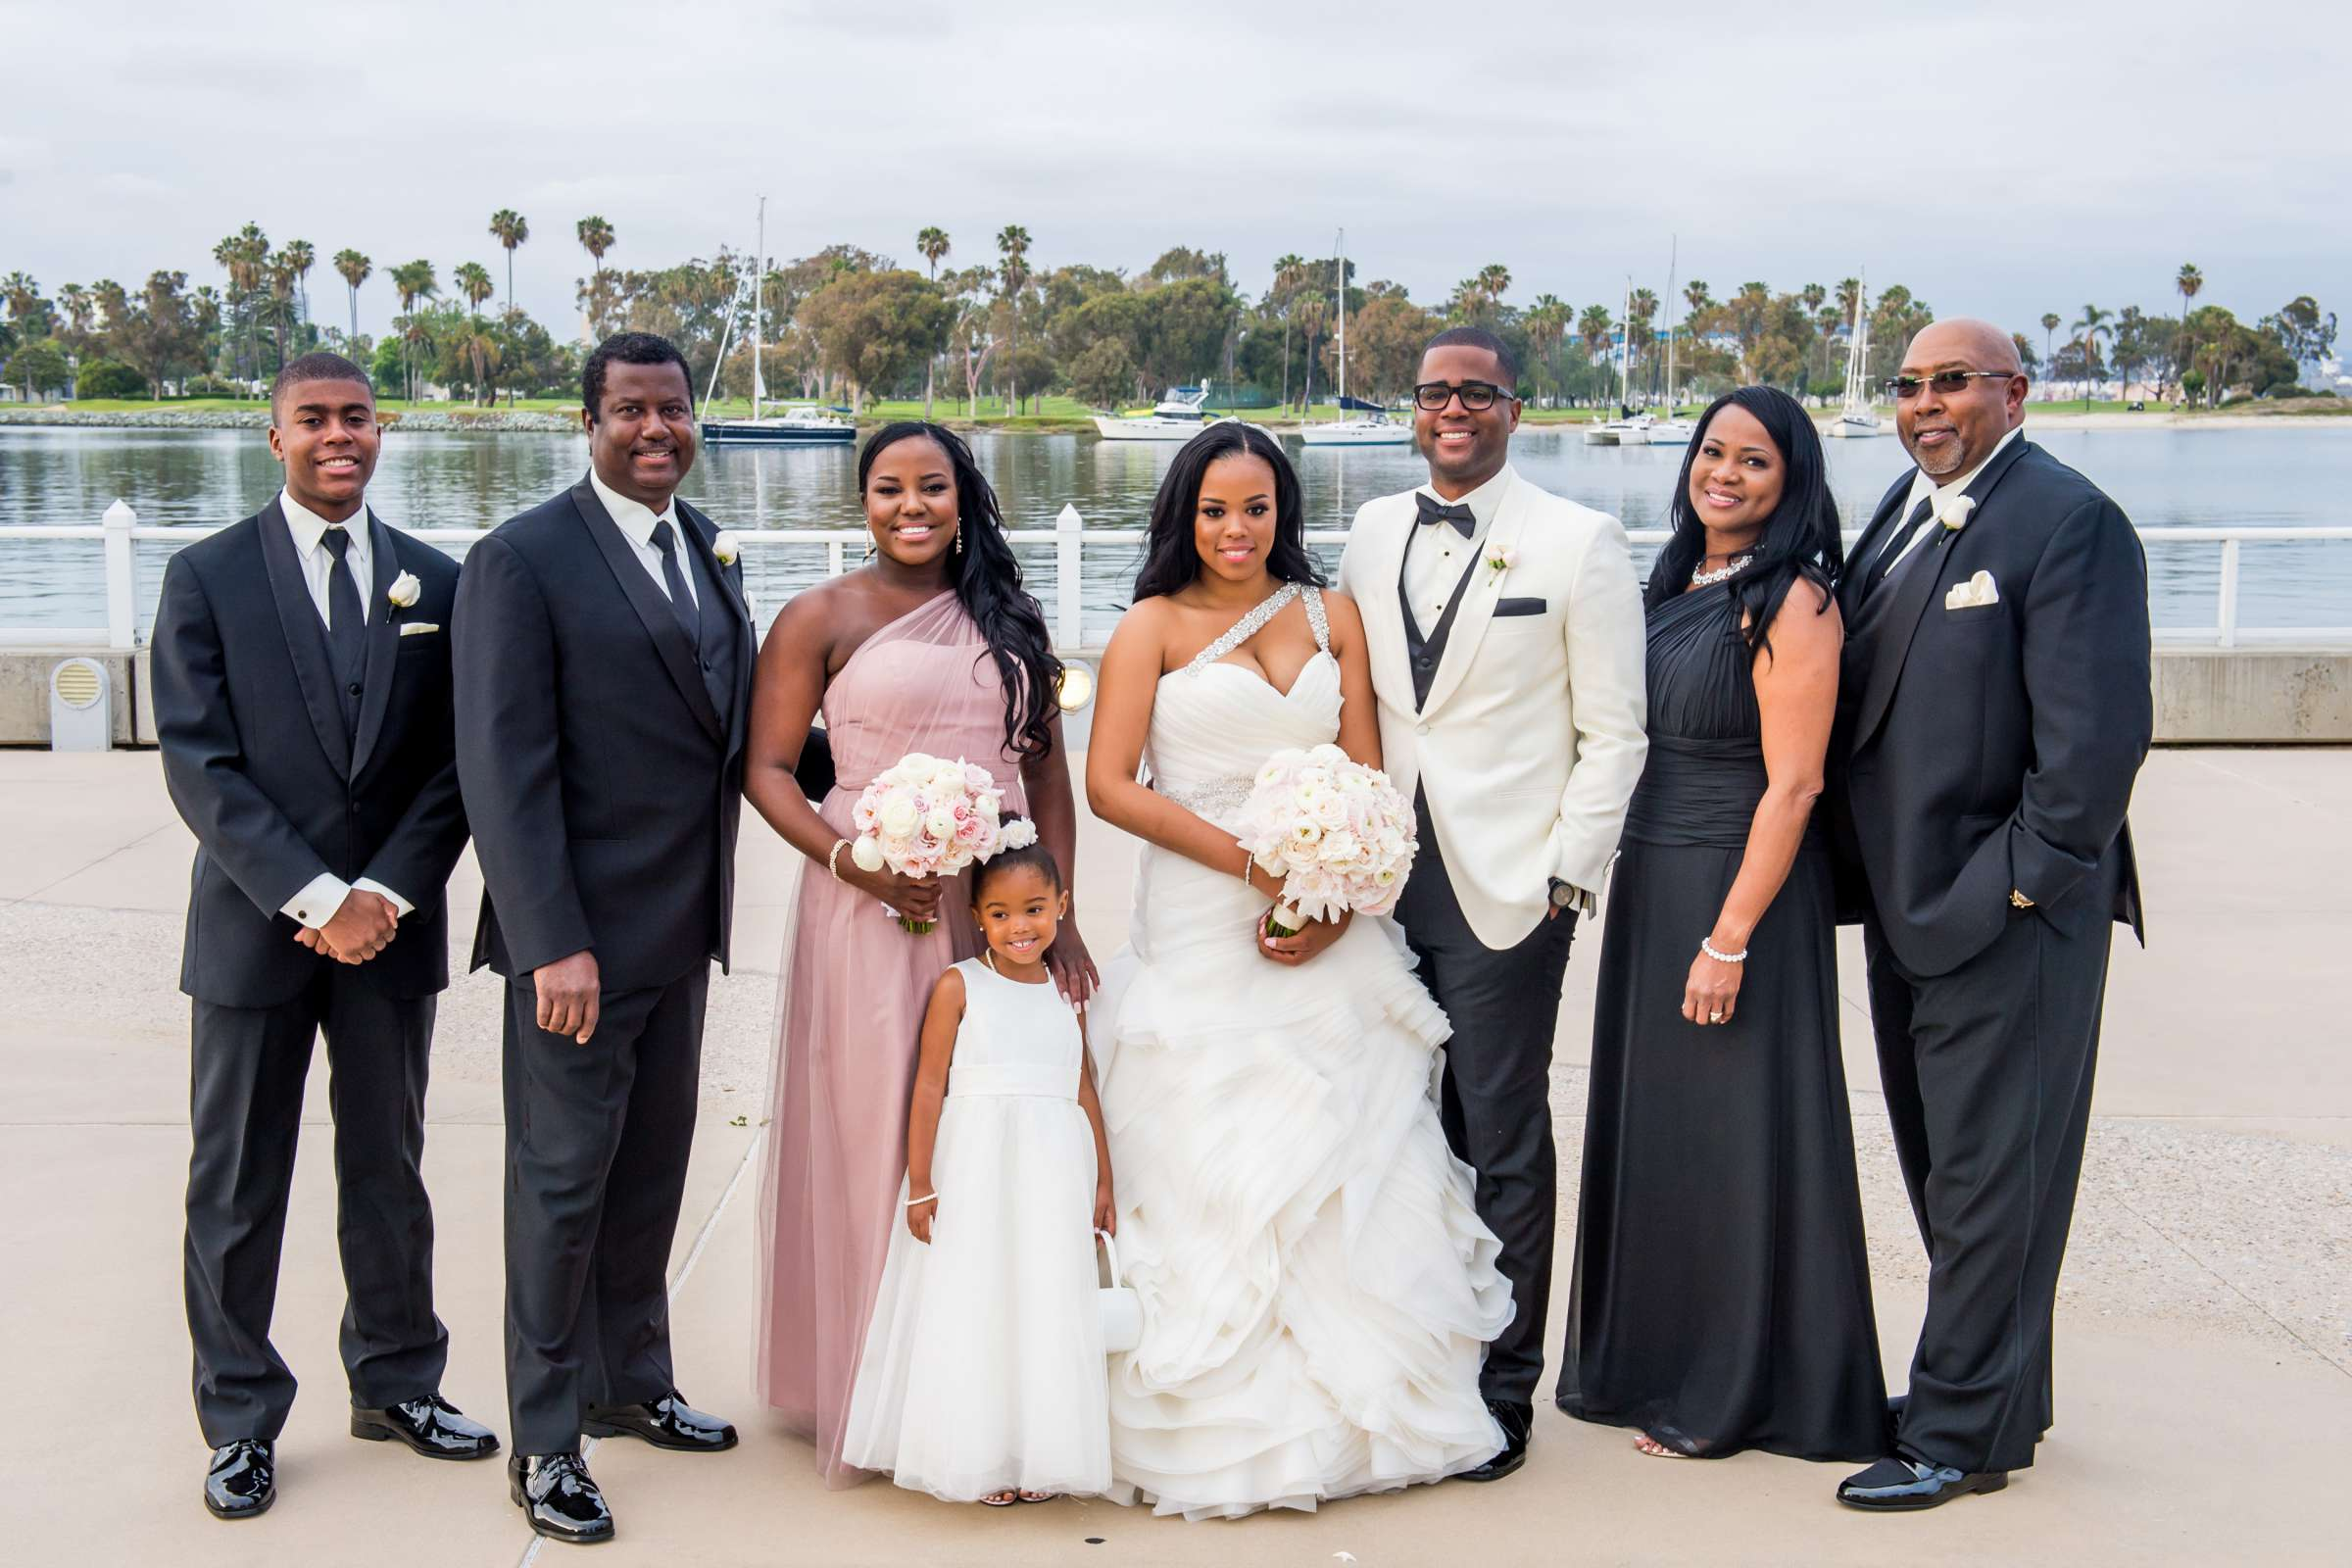 Coronado Community Center Wedding coordinated by First Comes Love Weddings & Events, Nikia and Charles Wedding Photo #60 by True Photography